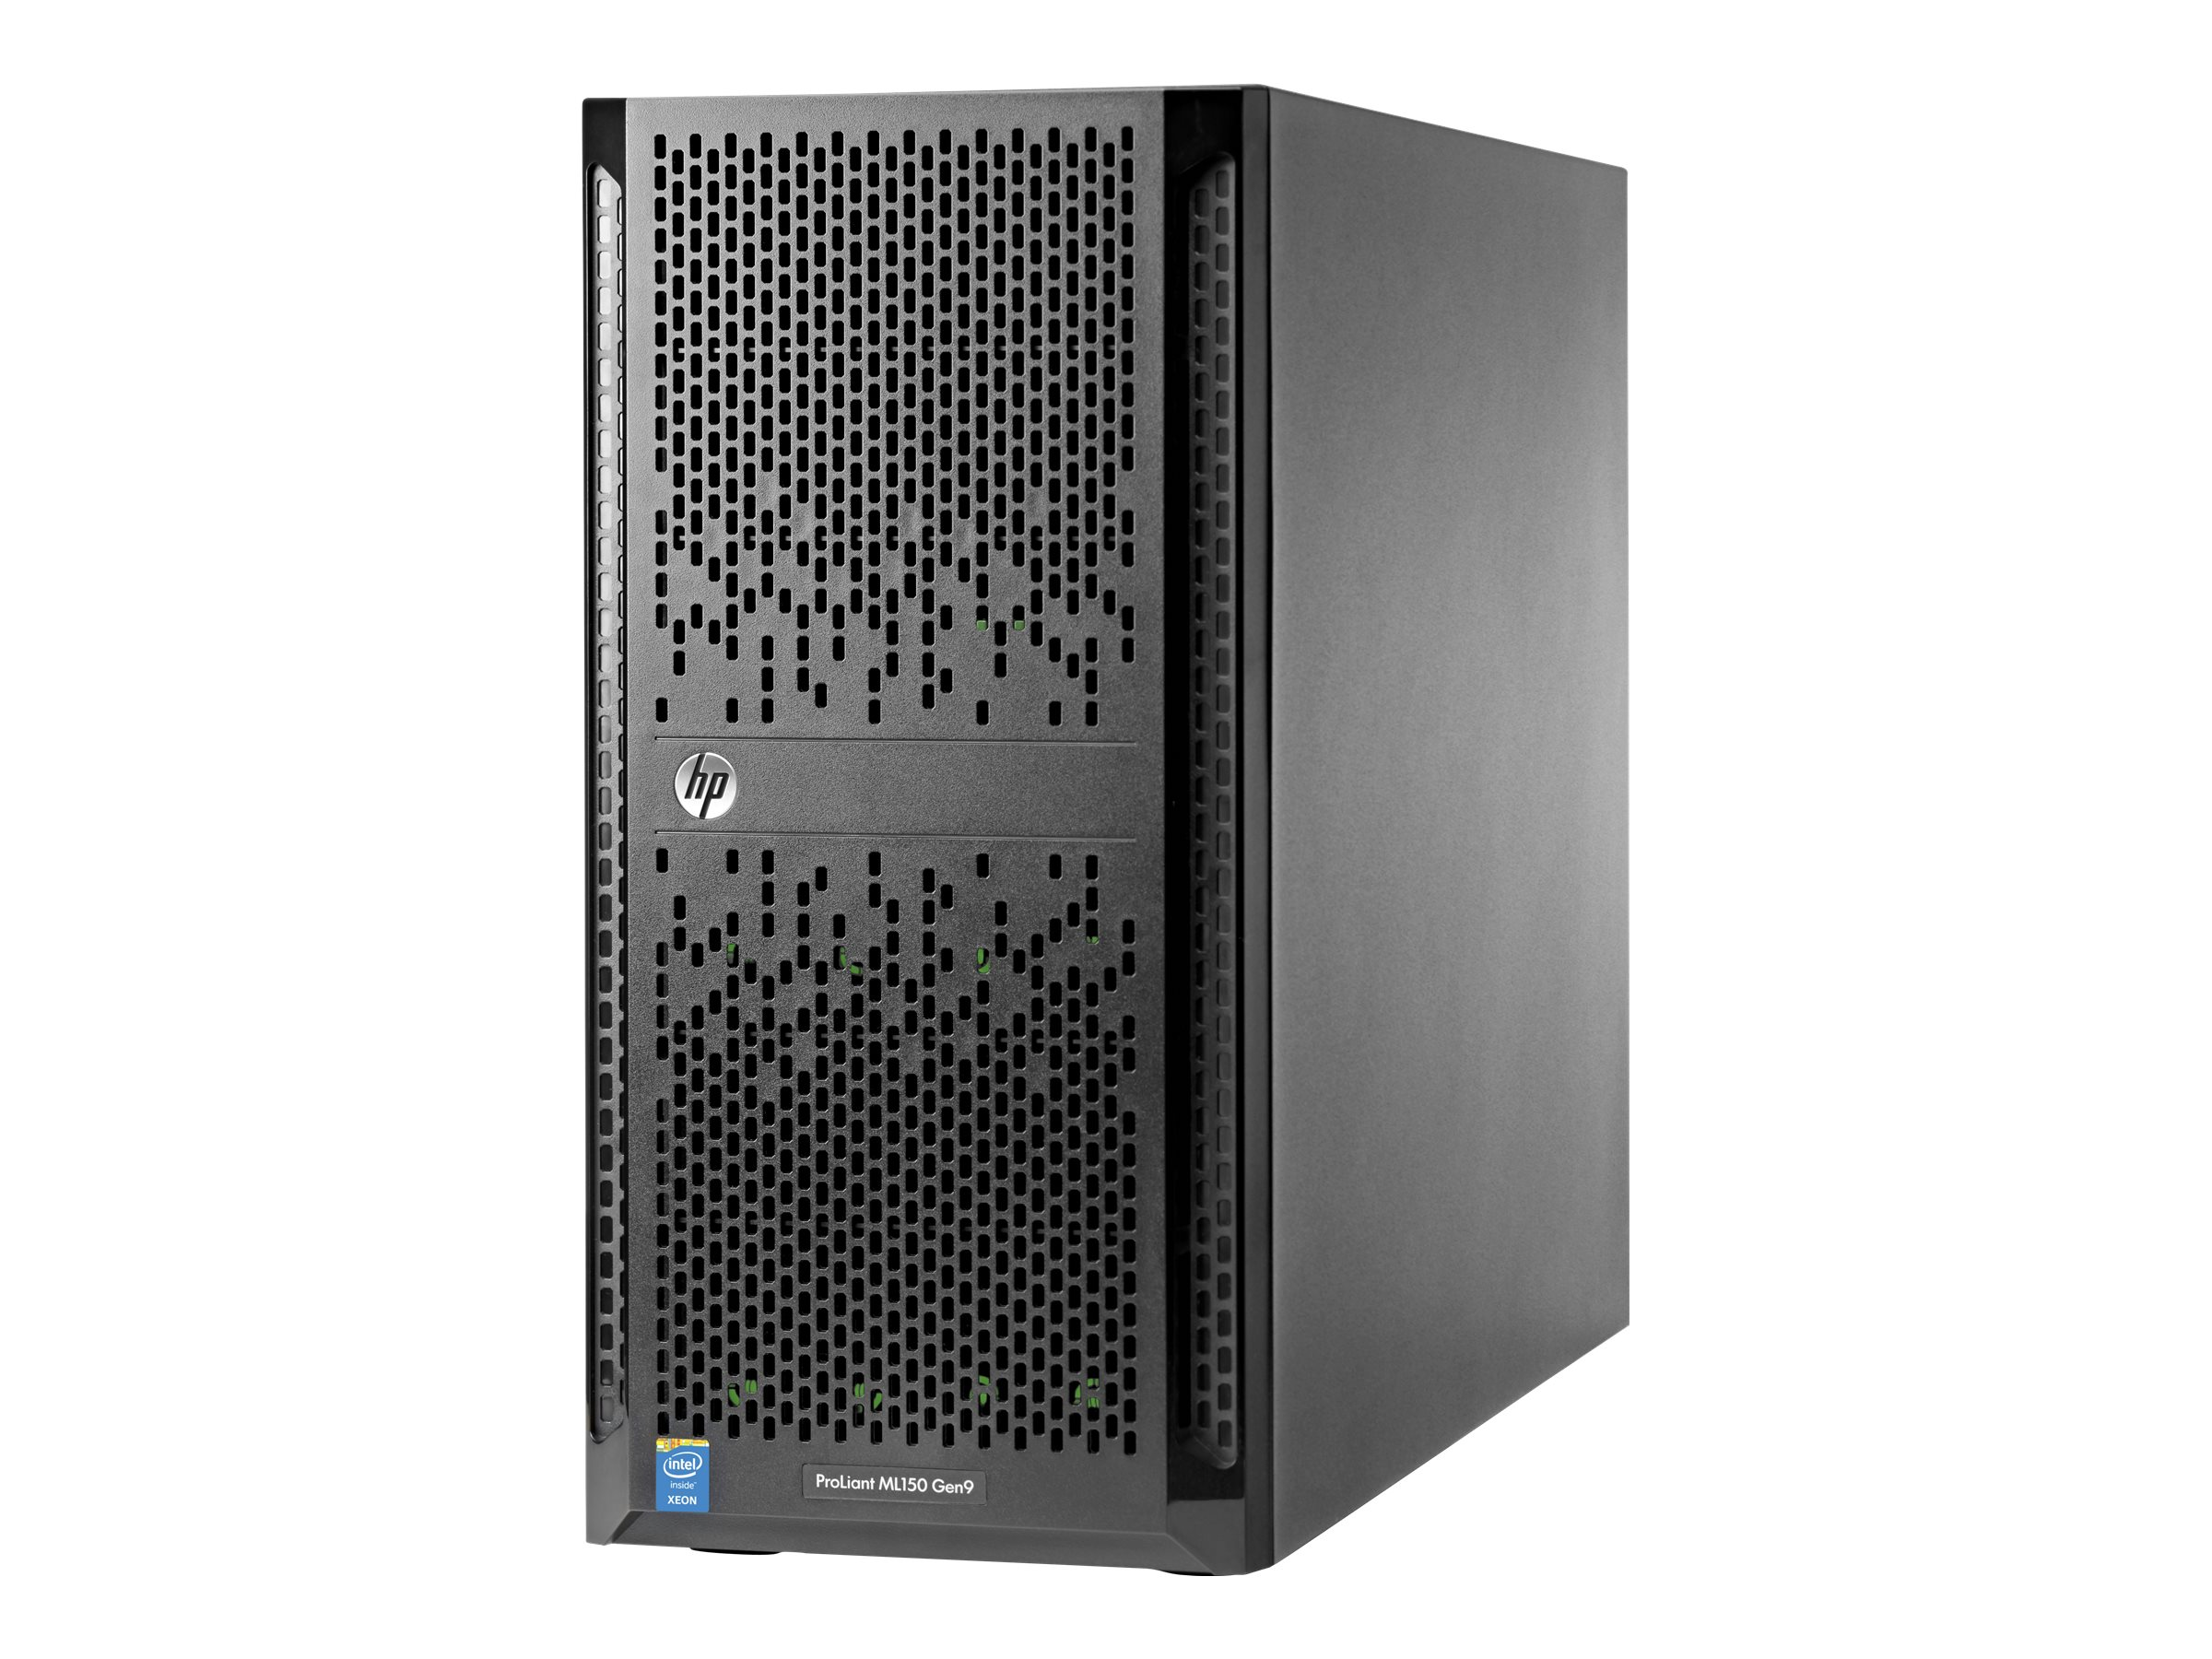 HPE ProLiant ML150 Gen9 Intel 2.4GHz Xeon, 776276-001, 18155334, Servers